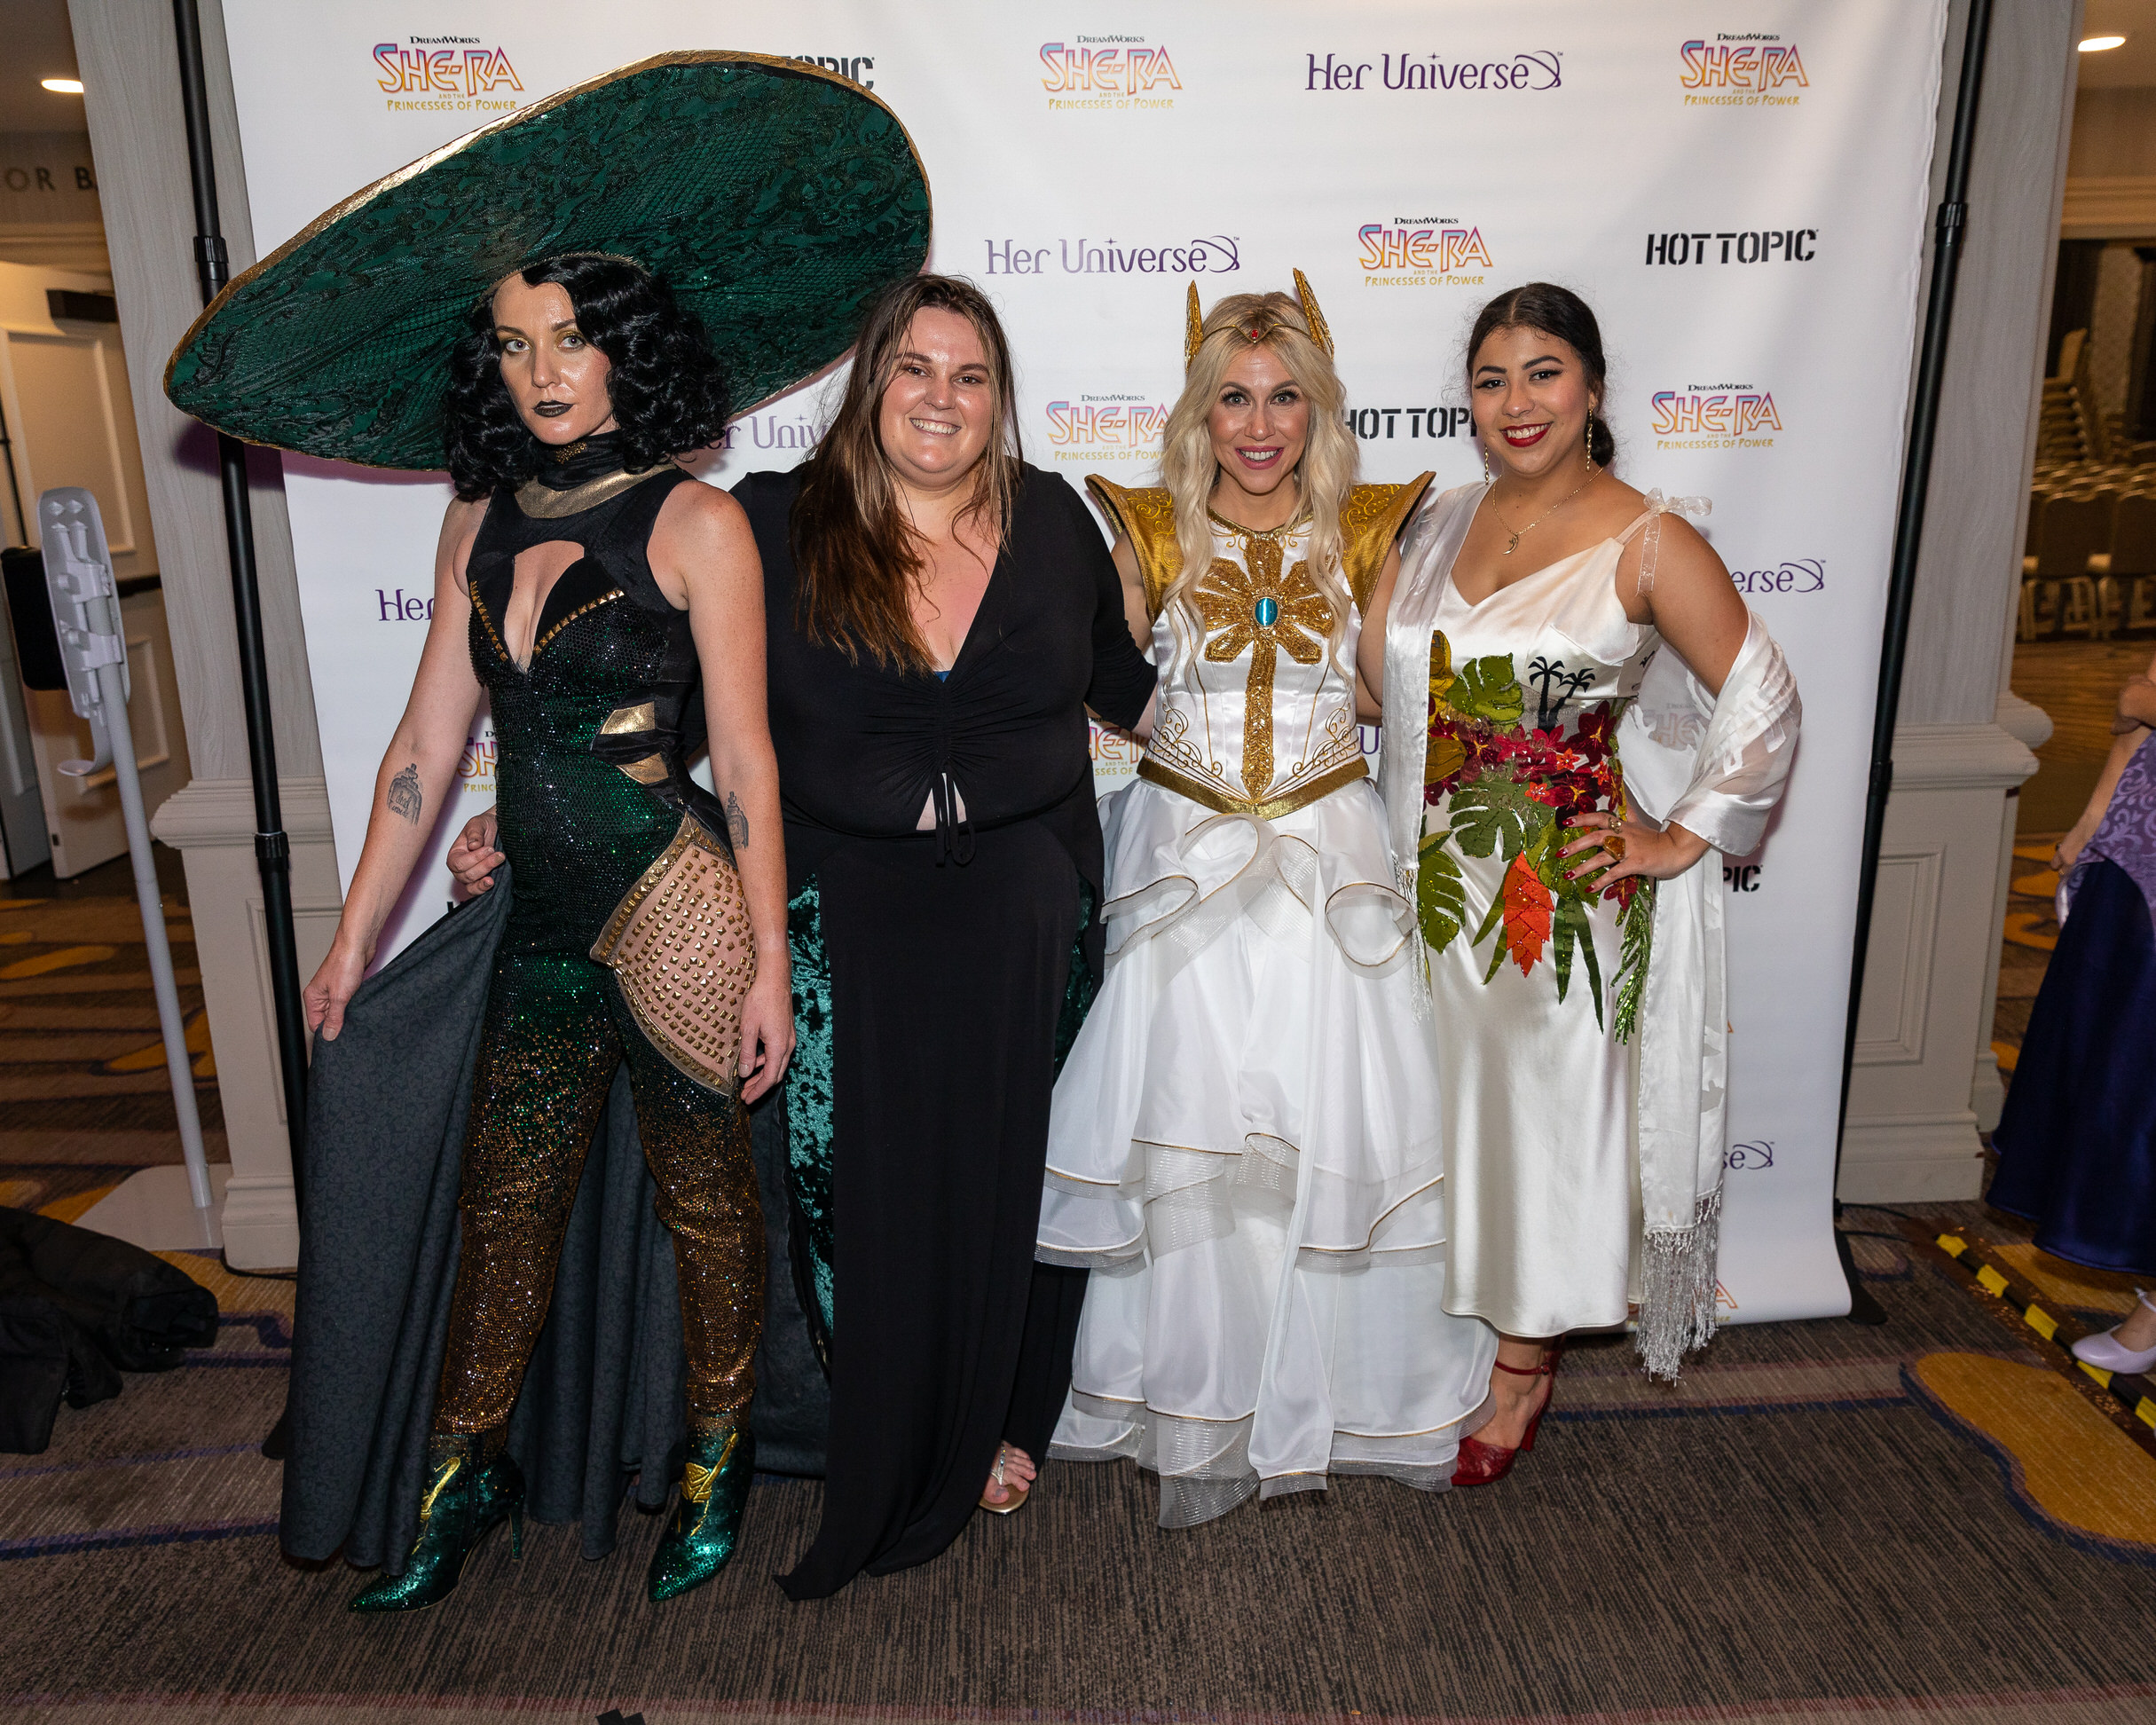 Winners and model from Her Universe at San Diego Comic-Con 2019